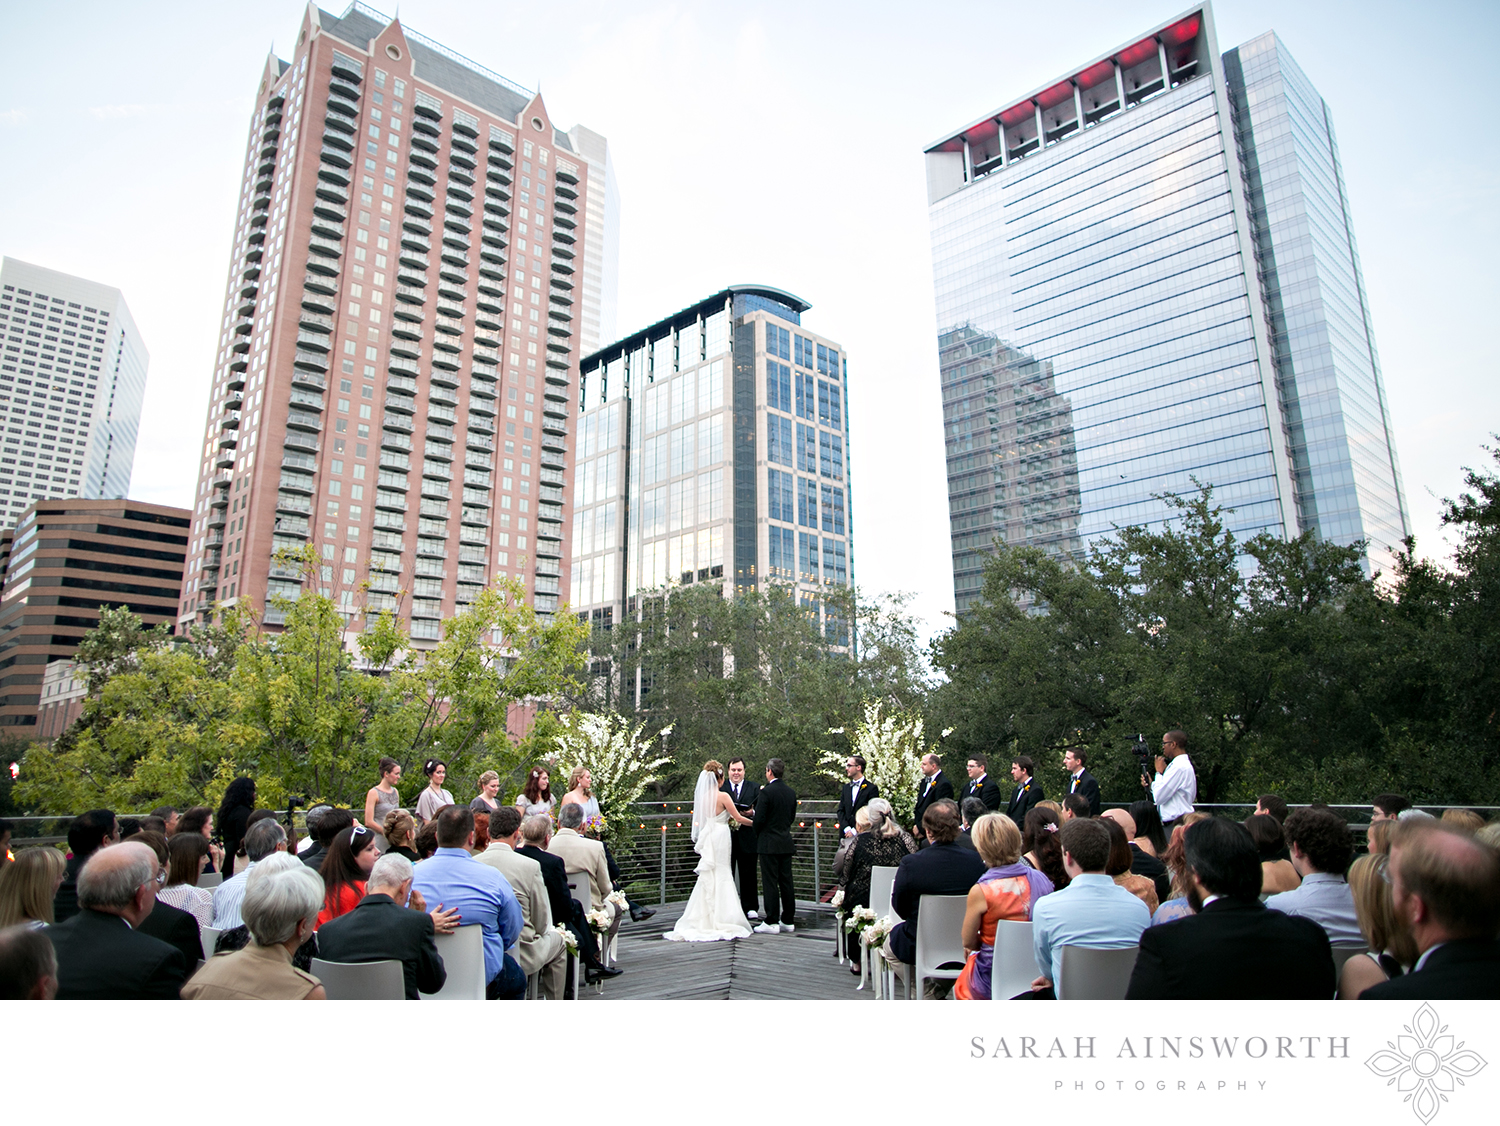 23_the-grove-wedding-rooftop-wedding-houston-weddings-at-the-grove-downtown-rooftop-wedding-hilton-americas-discovery-green-wedding_03.jpg